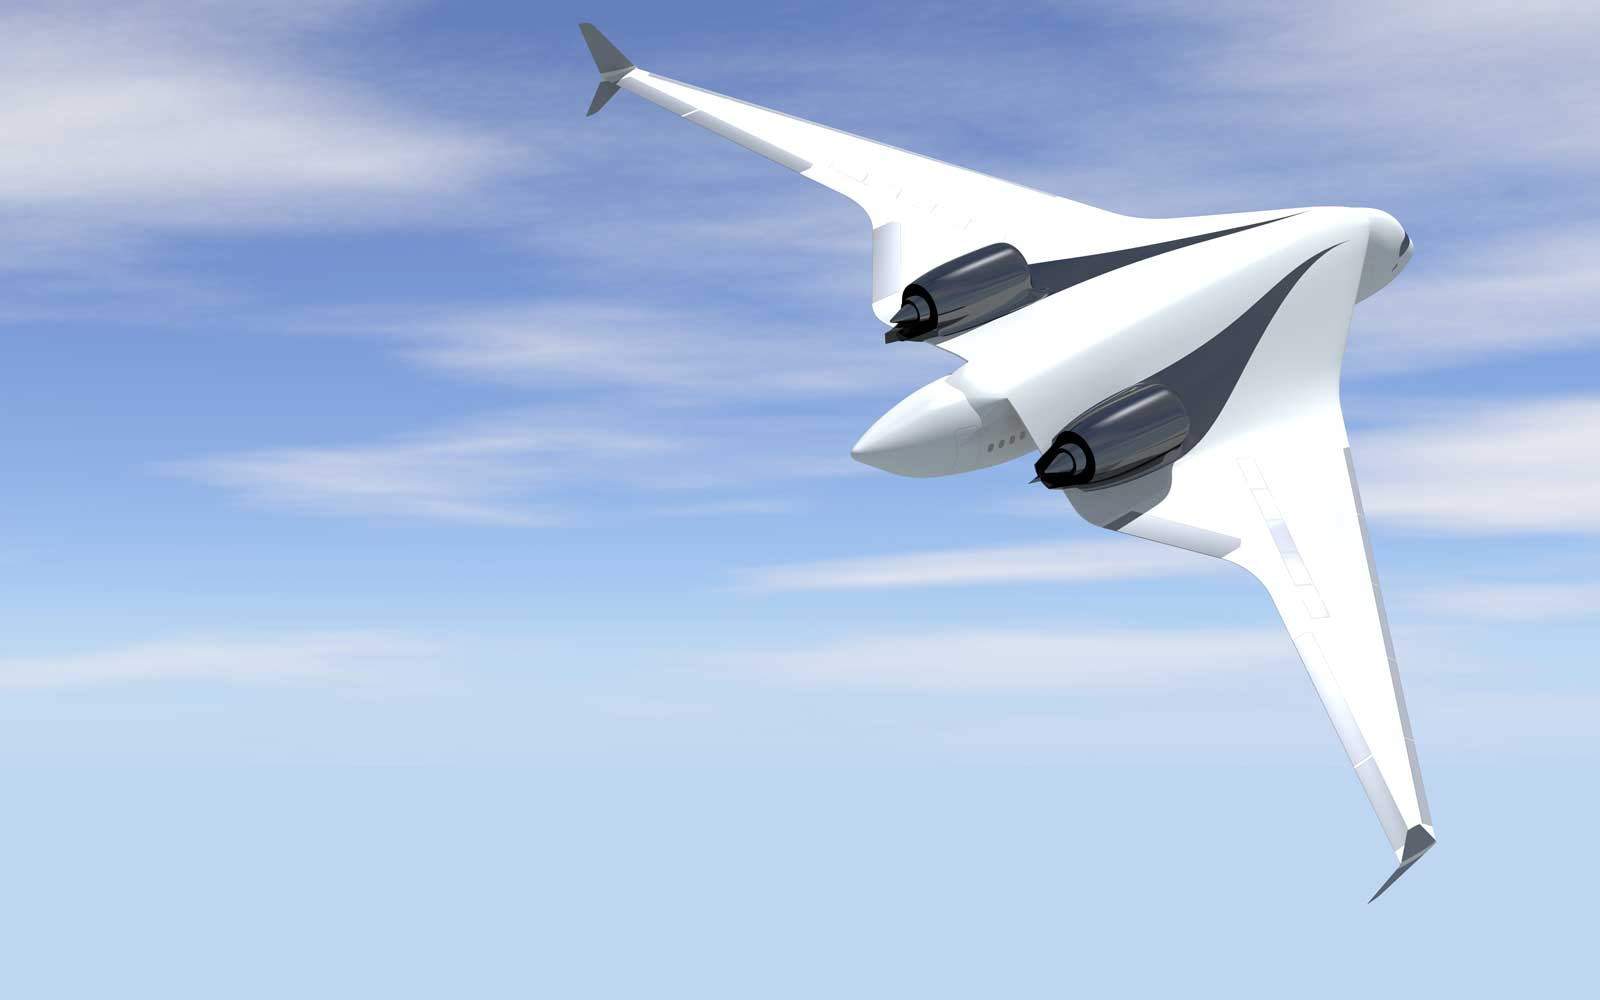 The Future Could Have Trains That Transform Into Planes